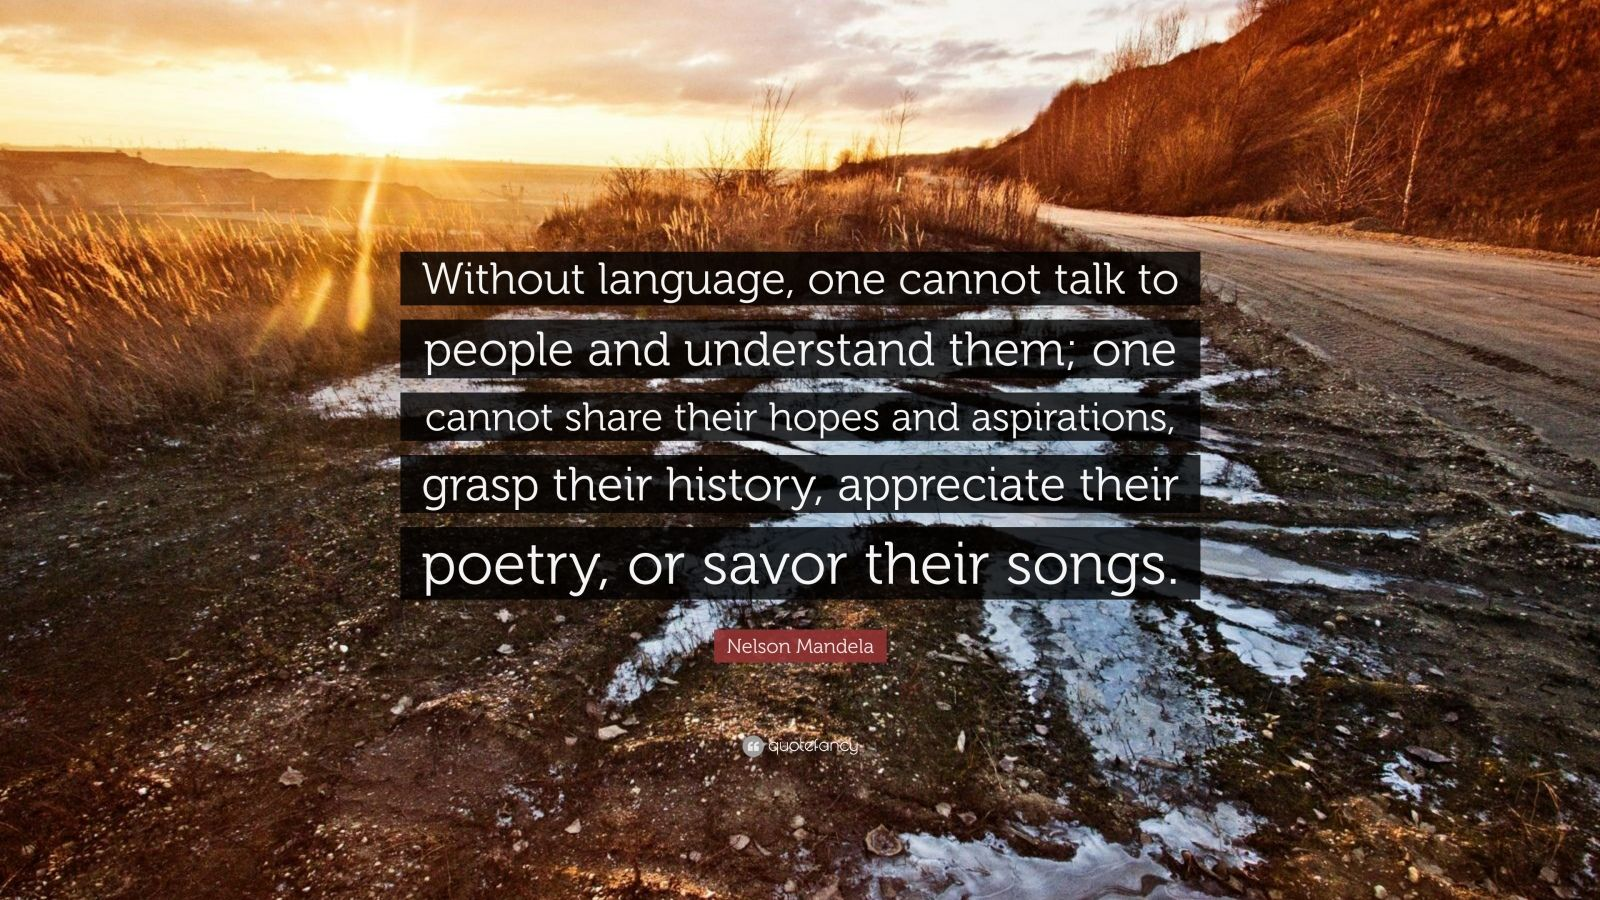 """Nelson Mandela Quote: """"Without language, one cannot talk to people and understand them; one cannot share their hopes and aspirations, grasp their history, appreciate their poetry, or savor their songs."""""""